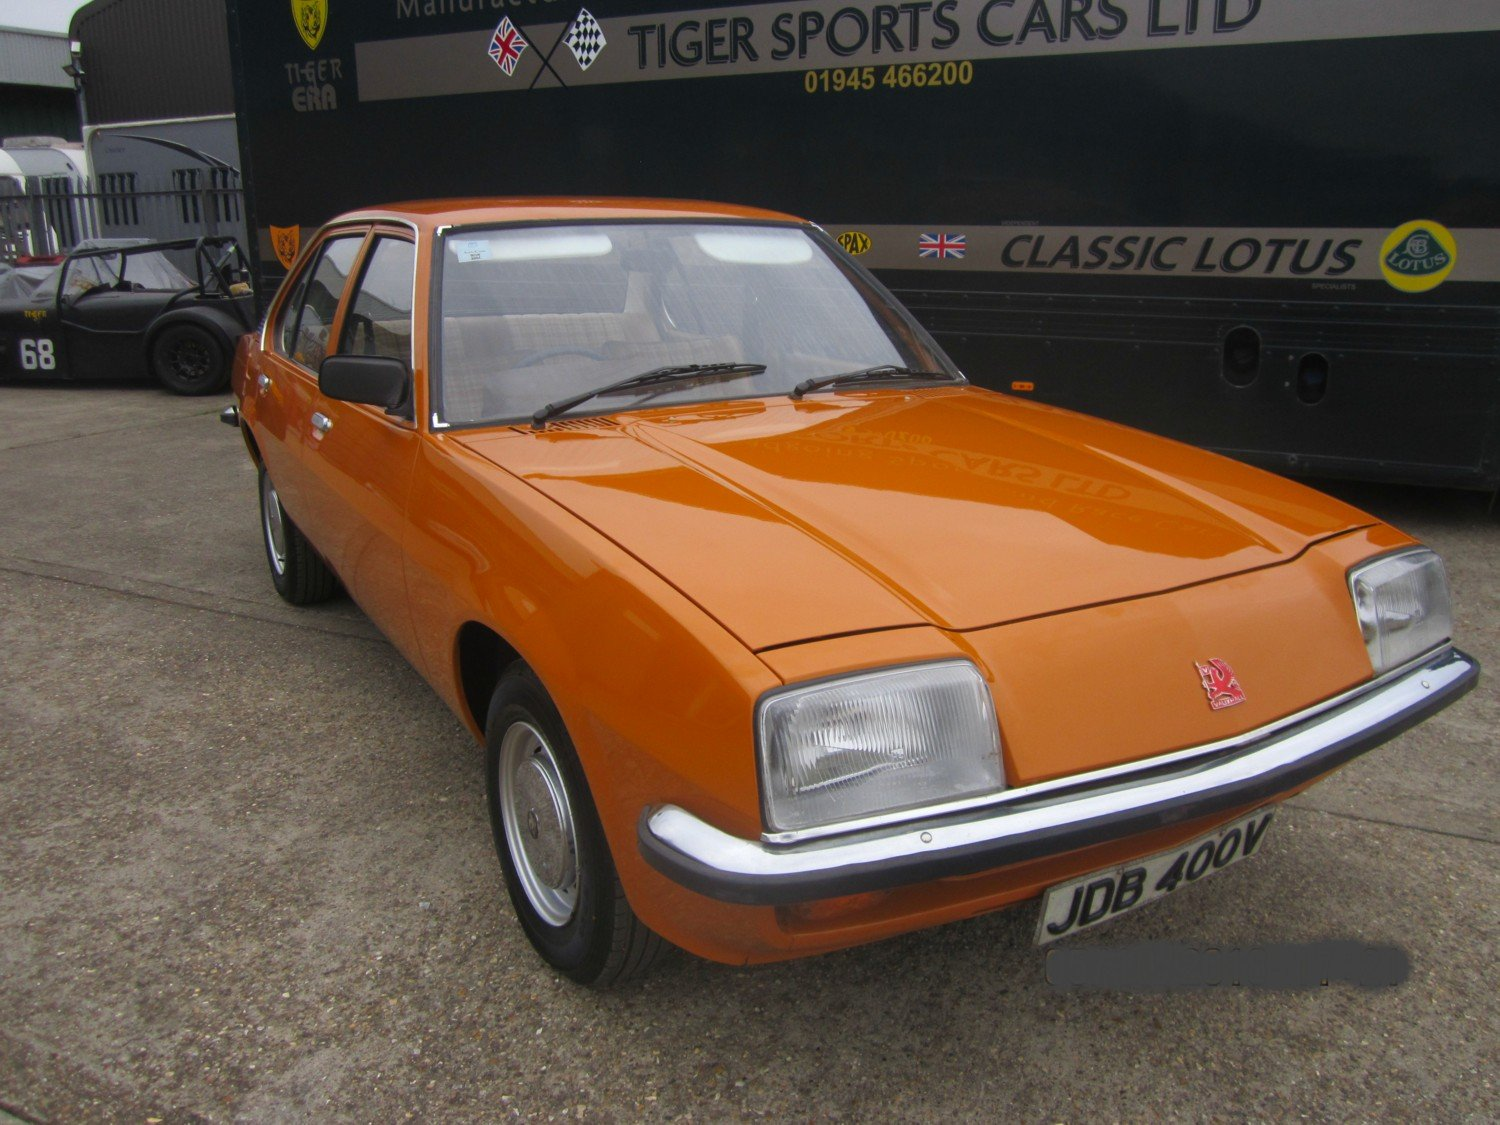 1980 Vauxhall cavalier 1250cc rare stunning For Sale (picture 1 of 6)